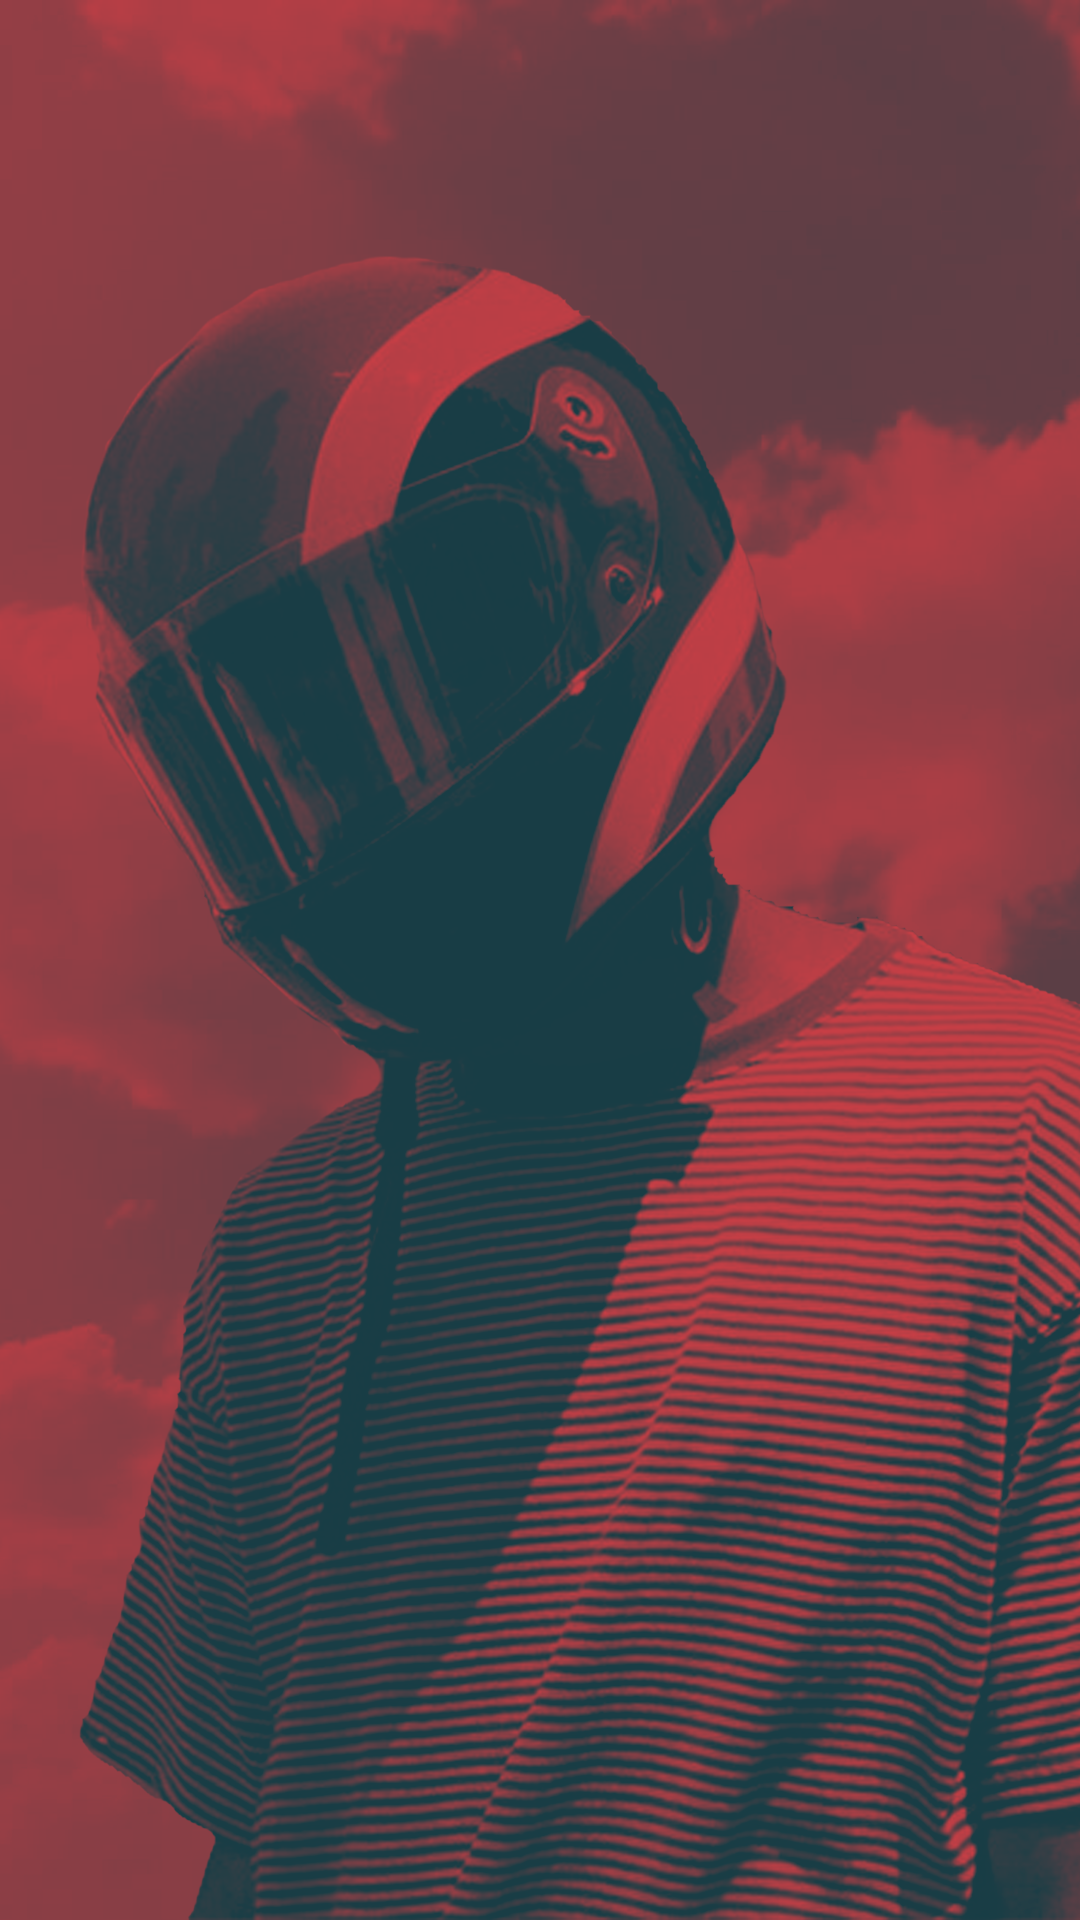 1080x1920 Made a Kevin Abstract phone wallpaper last night - Imgur